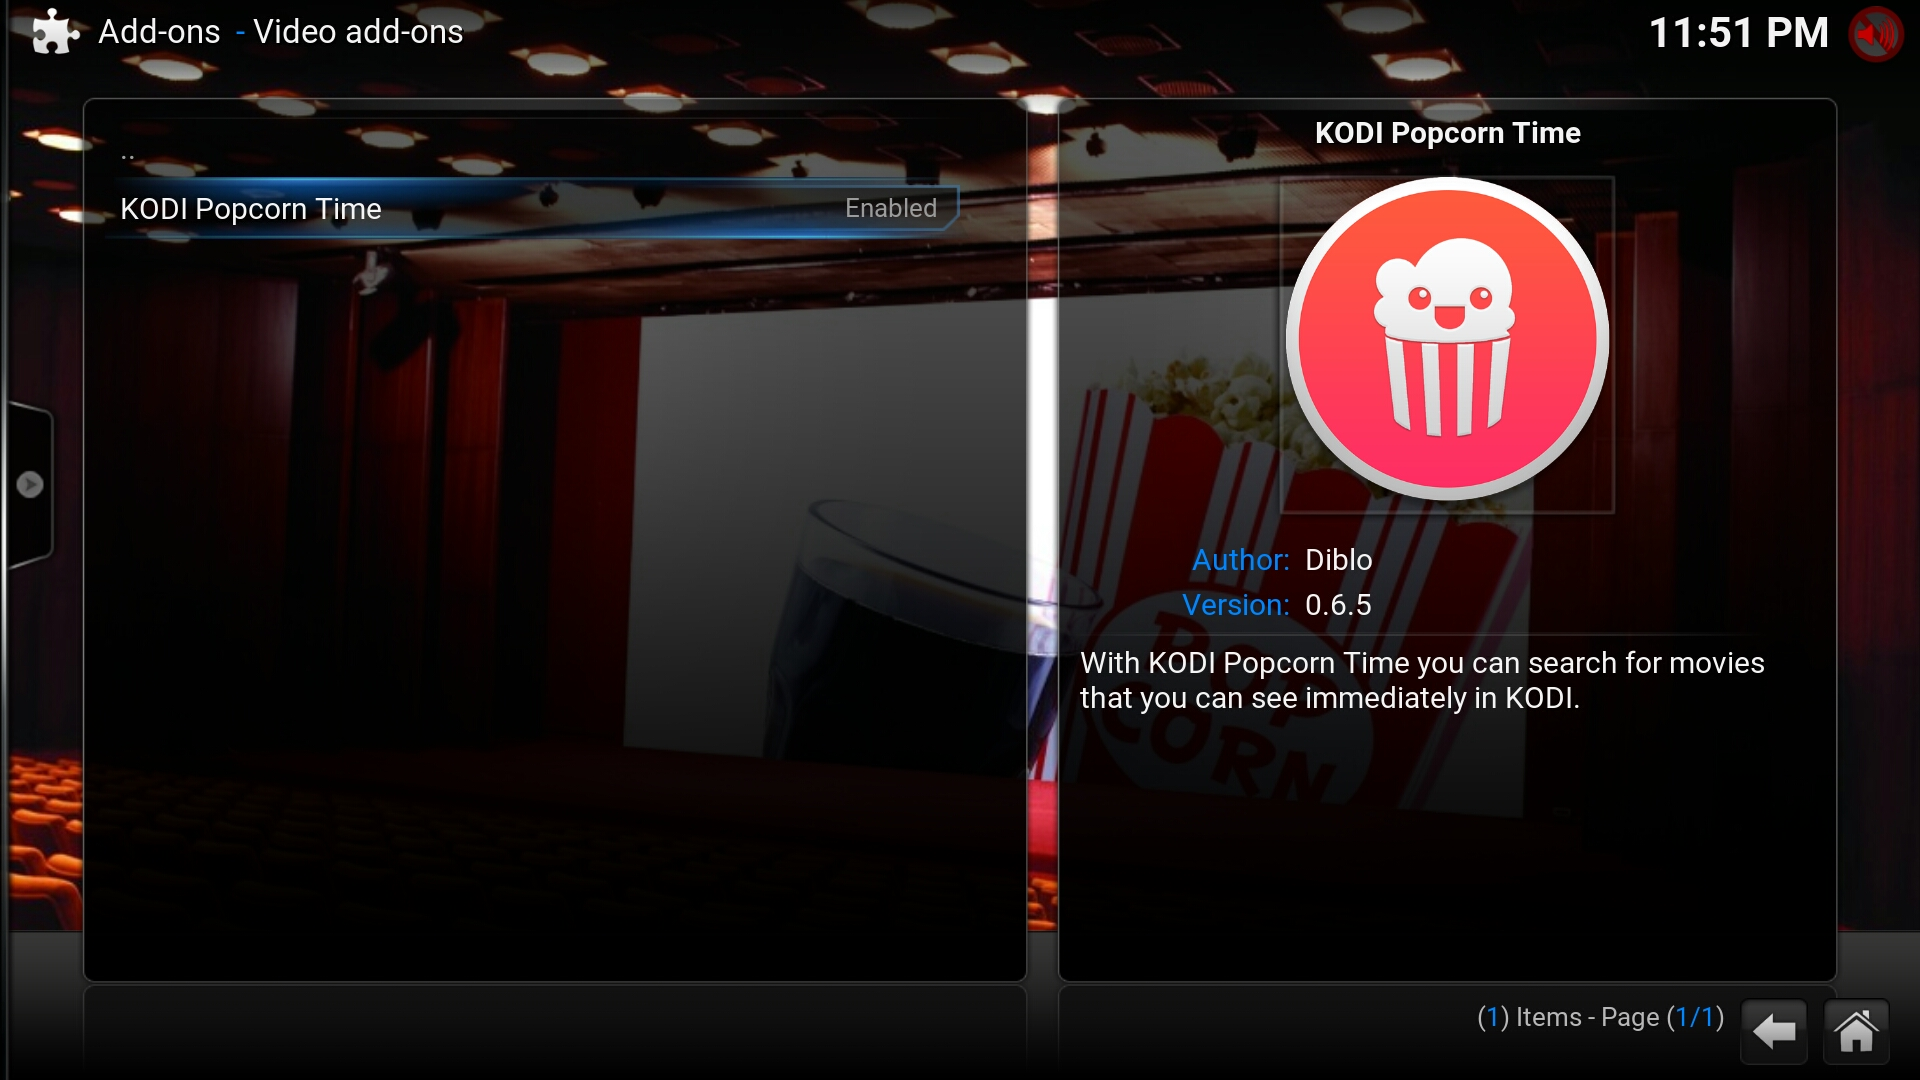 KODI Popcorn Time: Add-on xem phim cực hot cho Android TV Box